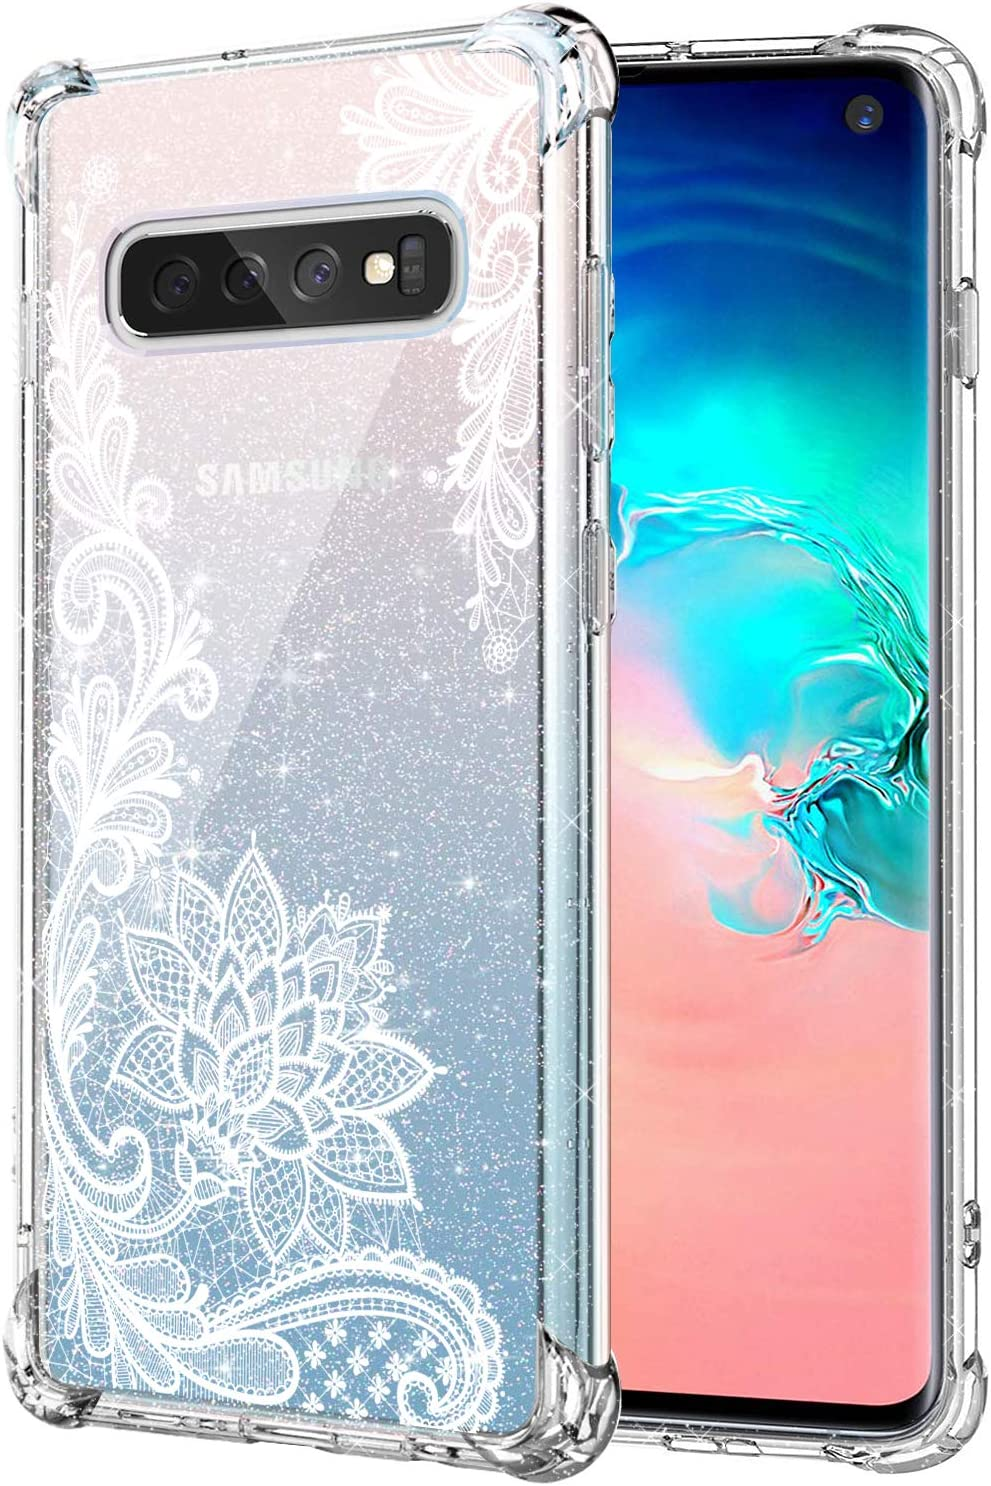 KIOMY Clear Glitter Case for Samsung Galaxy S10, Girls Women Bling Sparkly Shiny Luxury Case with Lace Flower Design Shockproof Bumper Protective Floral Cell Phone Back Cover Slim Fit Flexible Shining